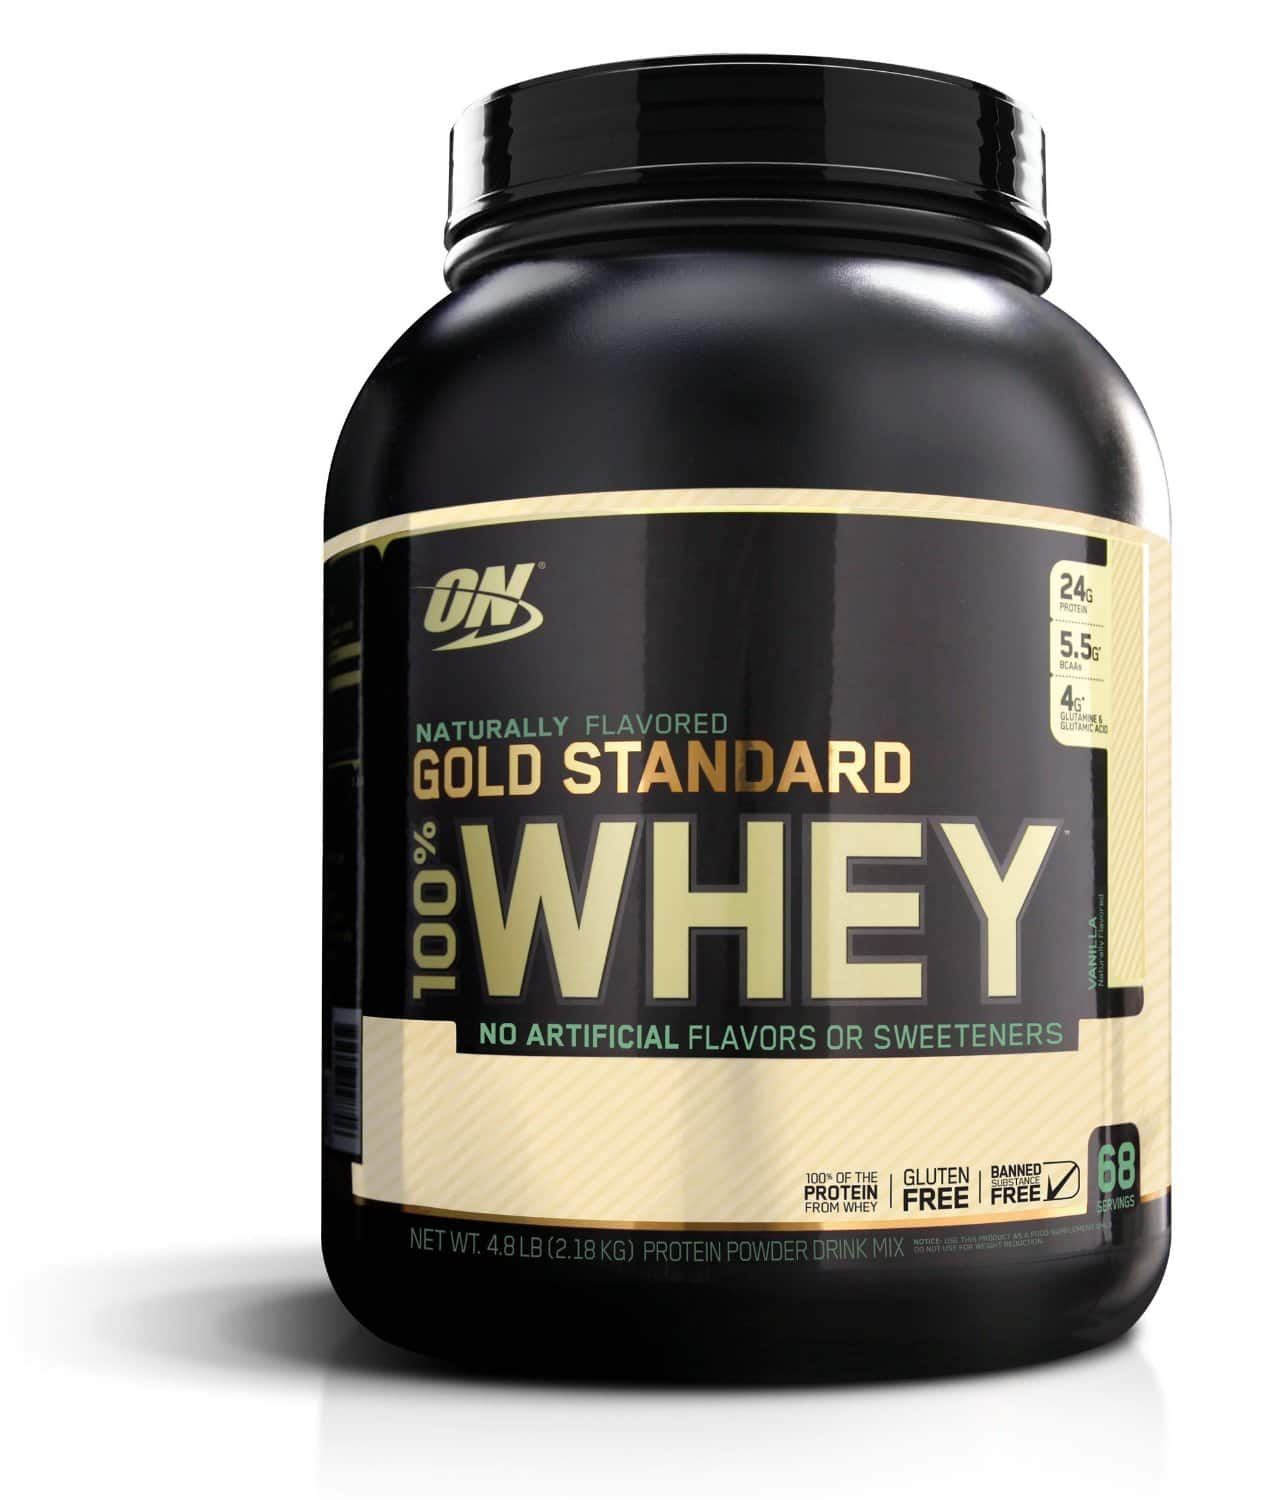 4.8lb Optimum Nutrition Gold Standard 100% Whey Natural  $37.70 + Free Shipping